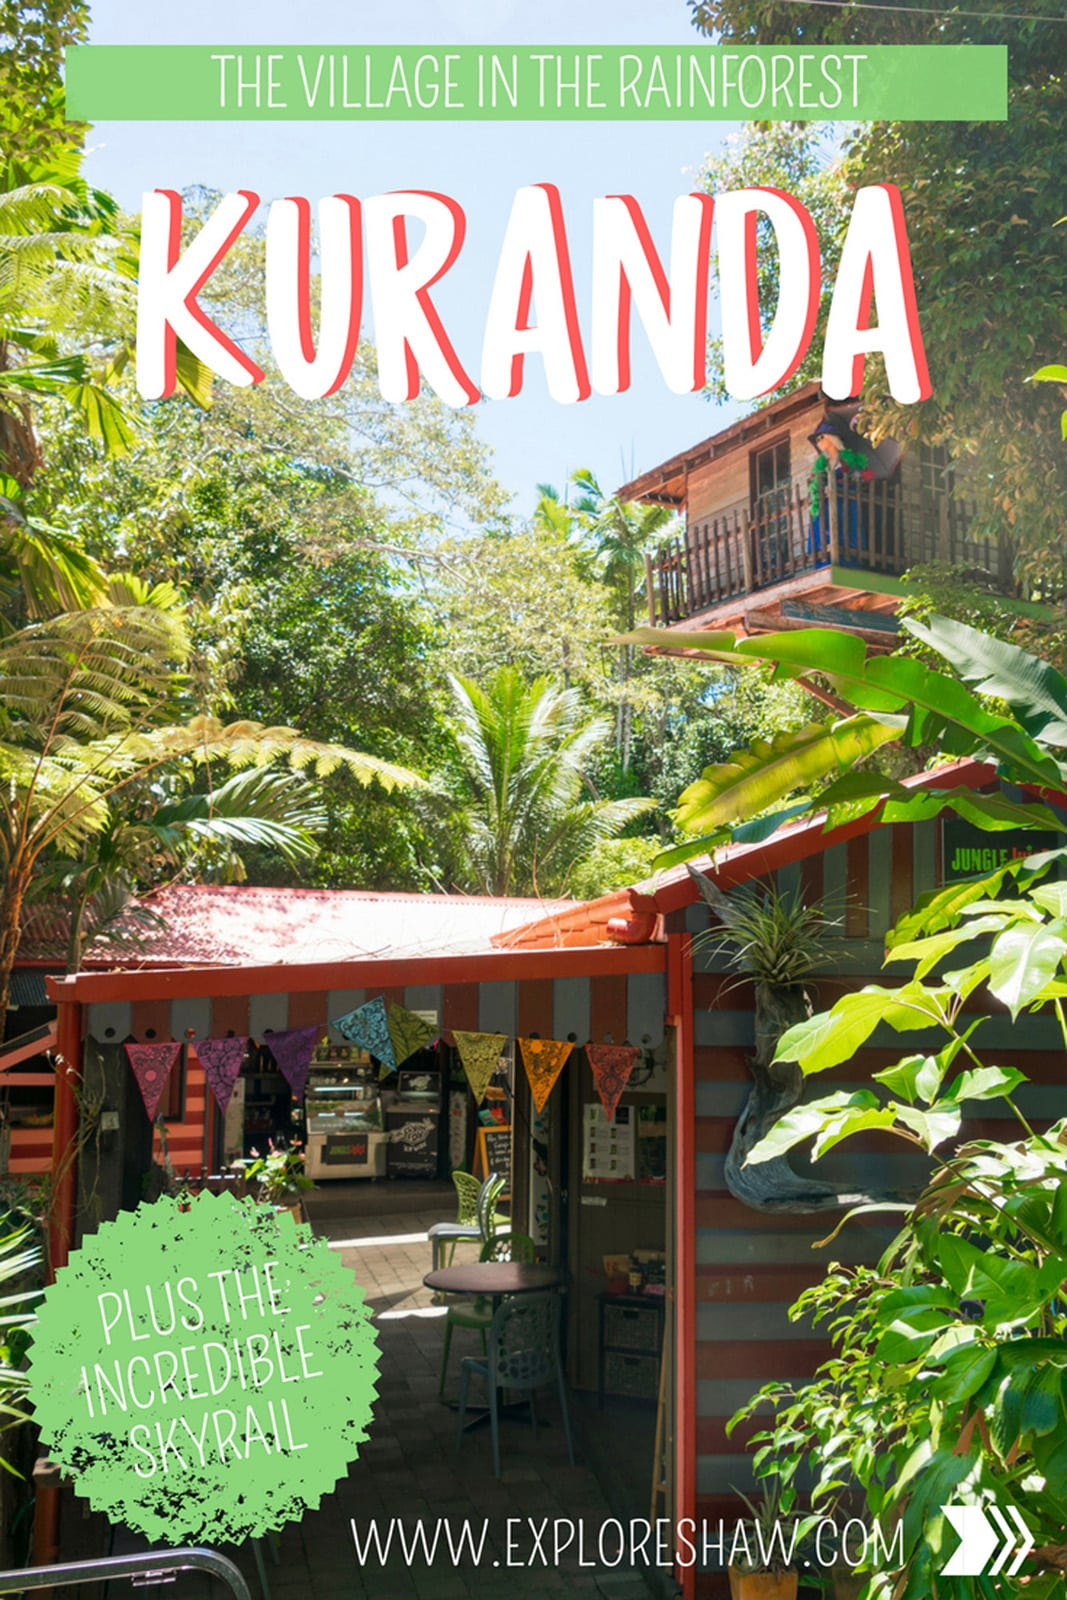 Make the most of your trip to Kuranda by experiencing everything this village in the rainforest has to offer - with heritage markets, the epic skyrail and a historical railway, there's definitely something for everyone. #Australia #Queensland #Kuranda #TropicalNorthQueensland